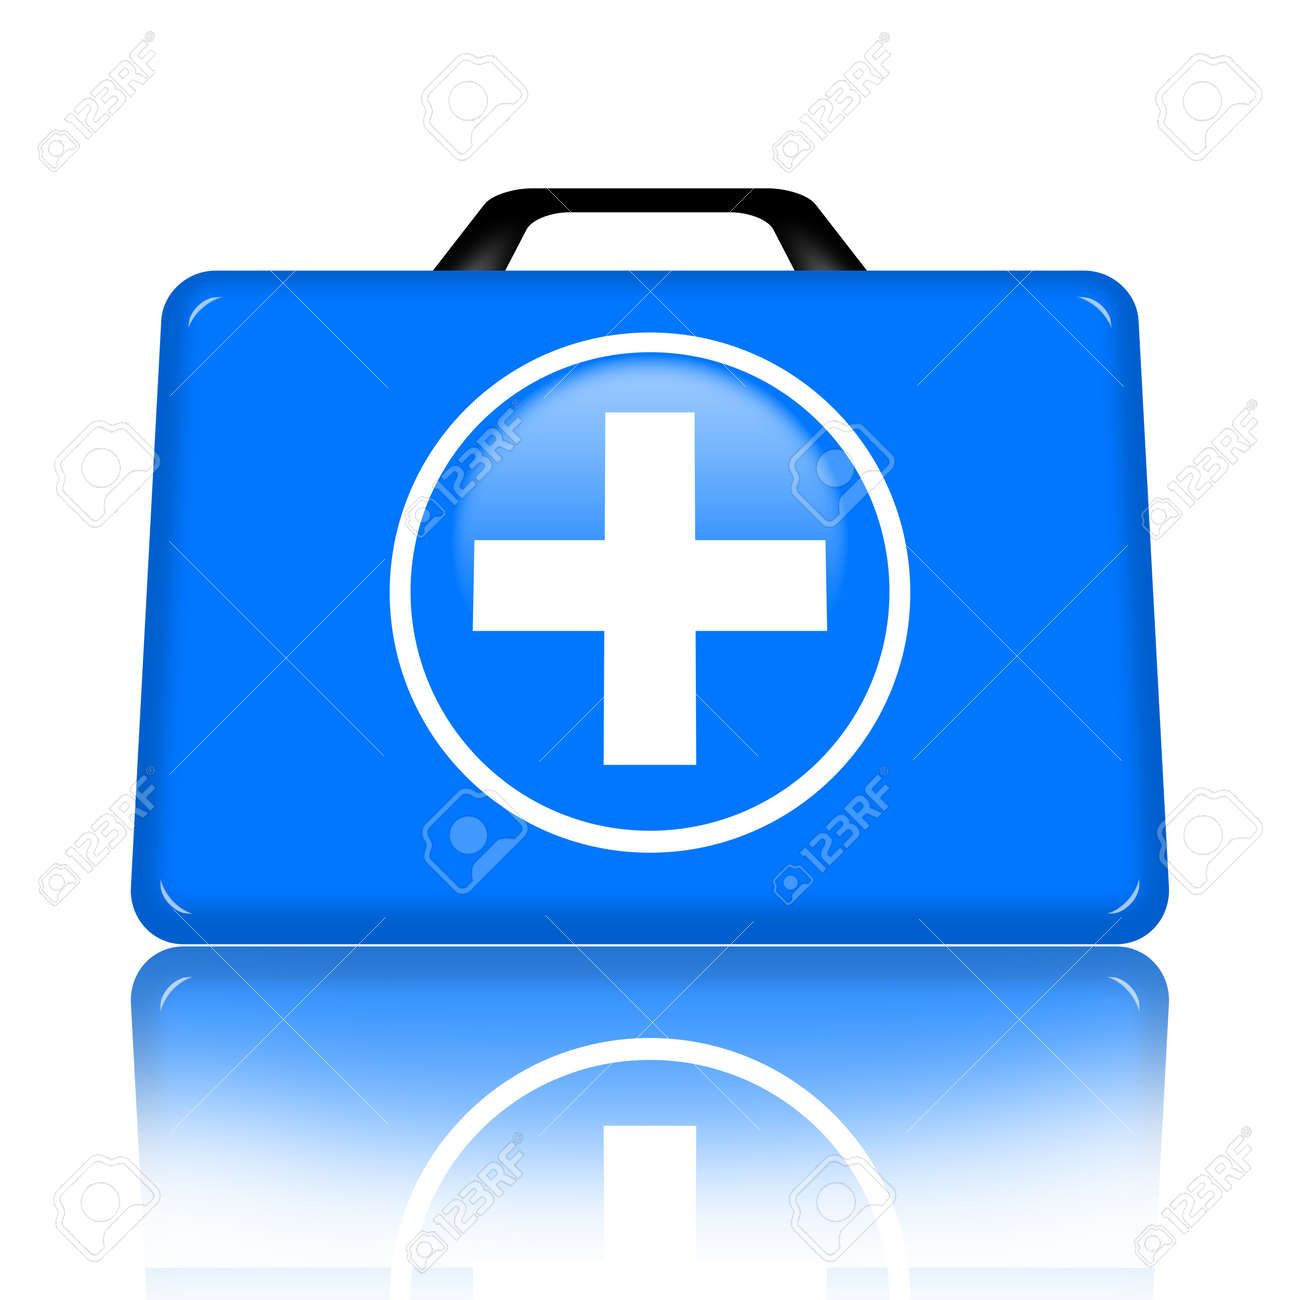 First aid kit with medical cross illustration isolated over white background Stock Photo - 9545402